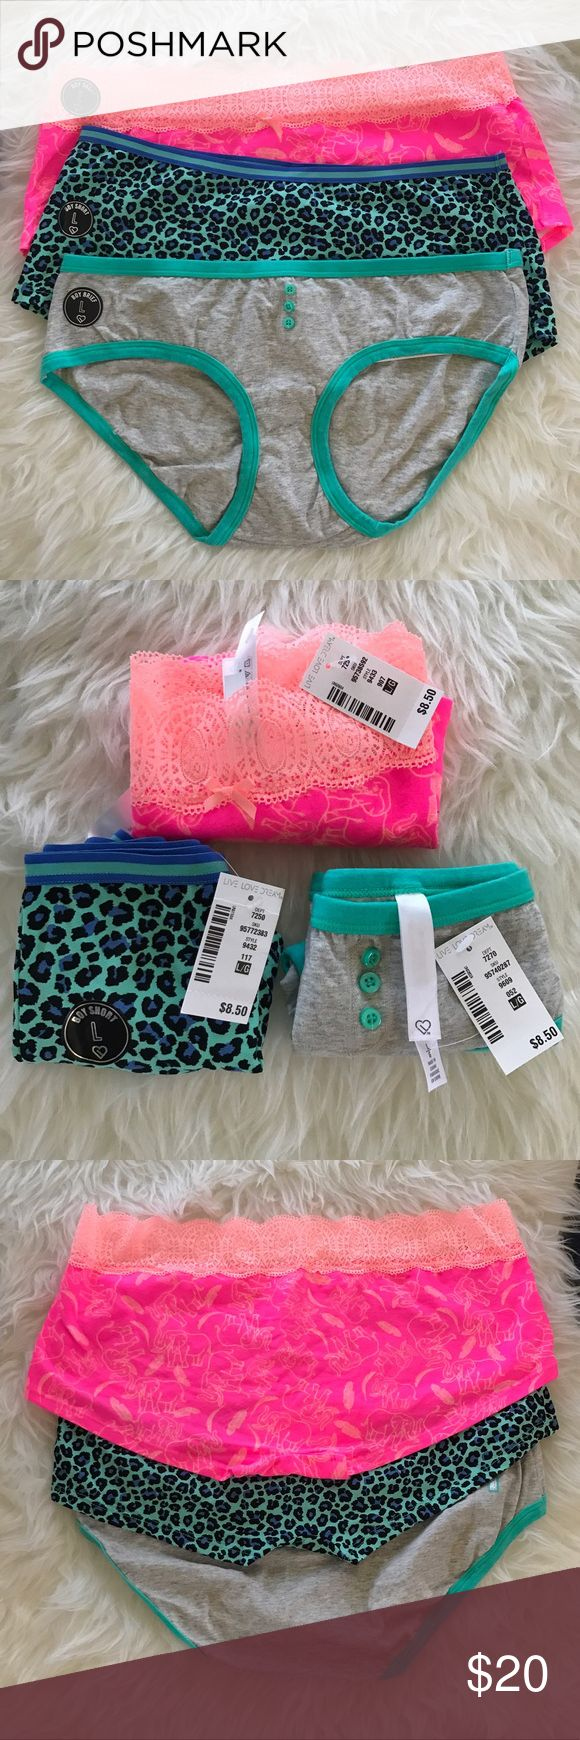 """3 Aeropostale Live Love Dream Panties Sz L NWT • Brand new w/ tags. • 3 cute Aeropostale brand """"Live Love Dream"""" panties • All Women's Size Large • All: 93% Cotton/ 7% Spandex. Lace band: 90% Nylon/ 10% Spandex                                                               • Green & Blue Leopard - Boy Short                  • Hot Pink/Coral Lace Elephants  - Boy Short    • Grey/ Teal w/ Button Detail - Boy Brief ✅Offers ✅Same/Next Day Shipping ✅Feel free to ask questions. :) 🚫No trades  🚫No…"""